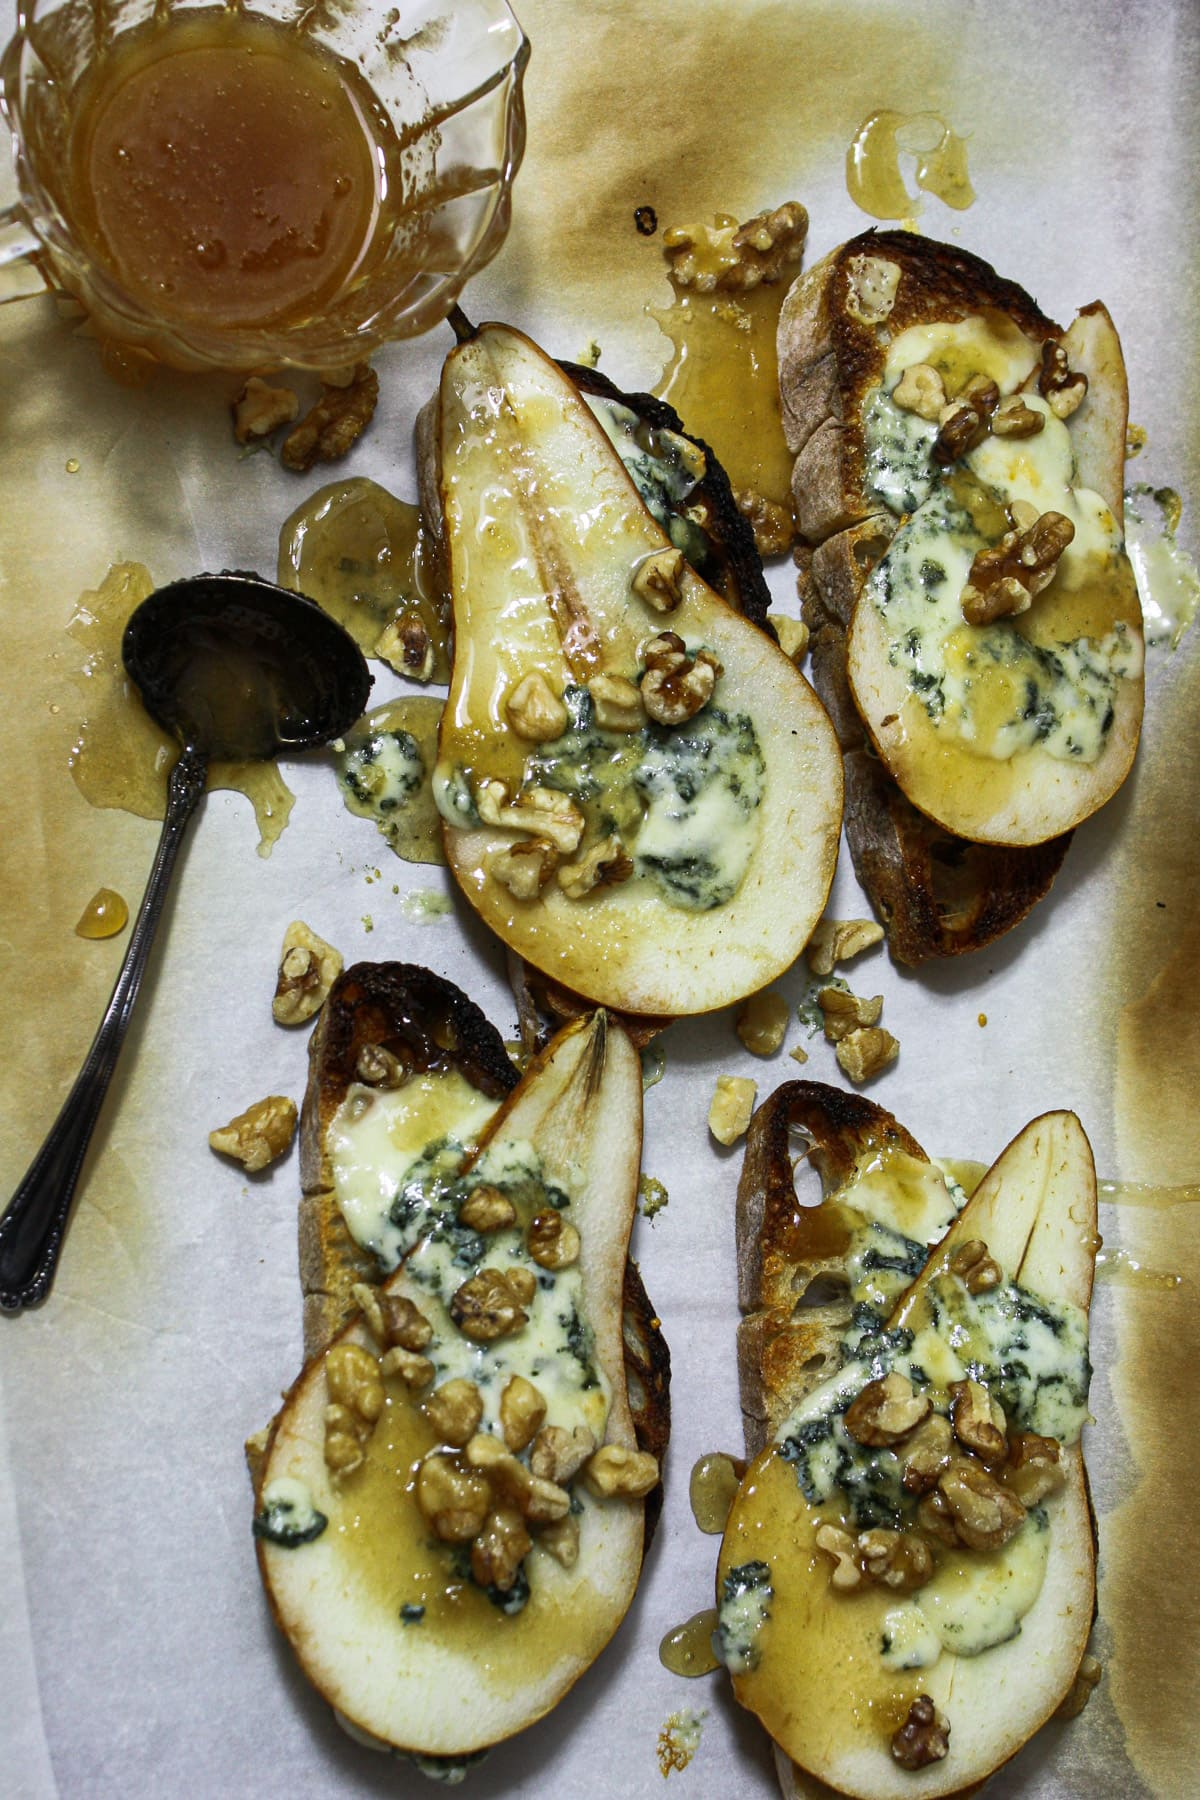 Toasted crostini topped with pear, blue cheese walnuts and honey.